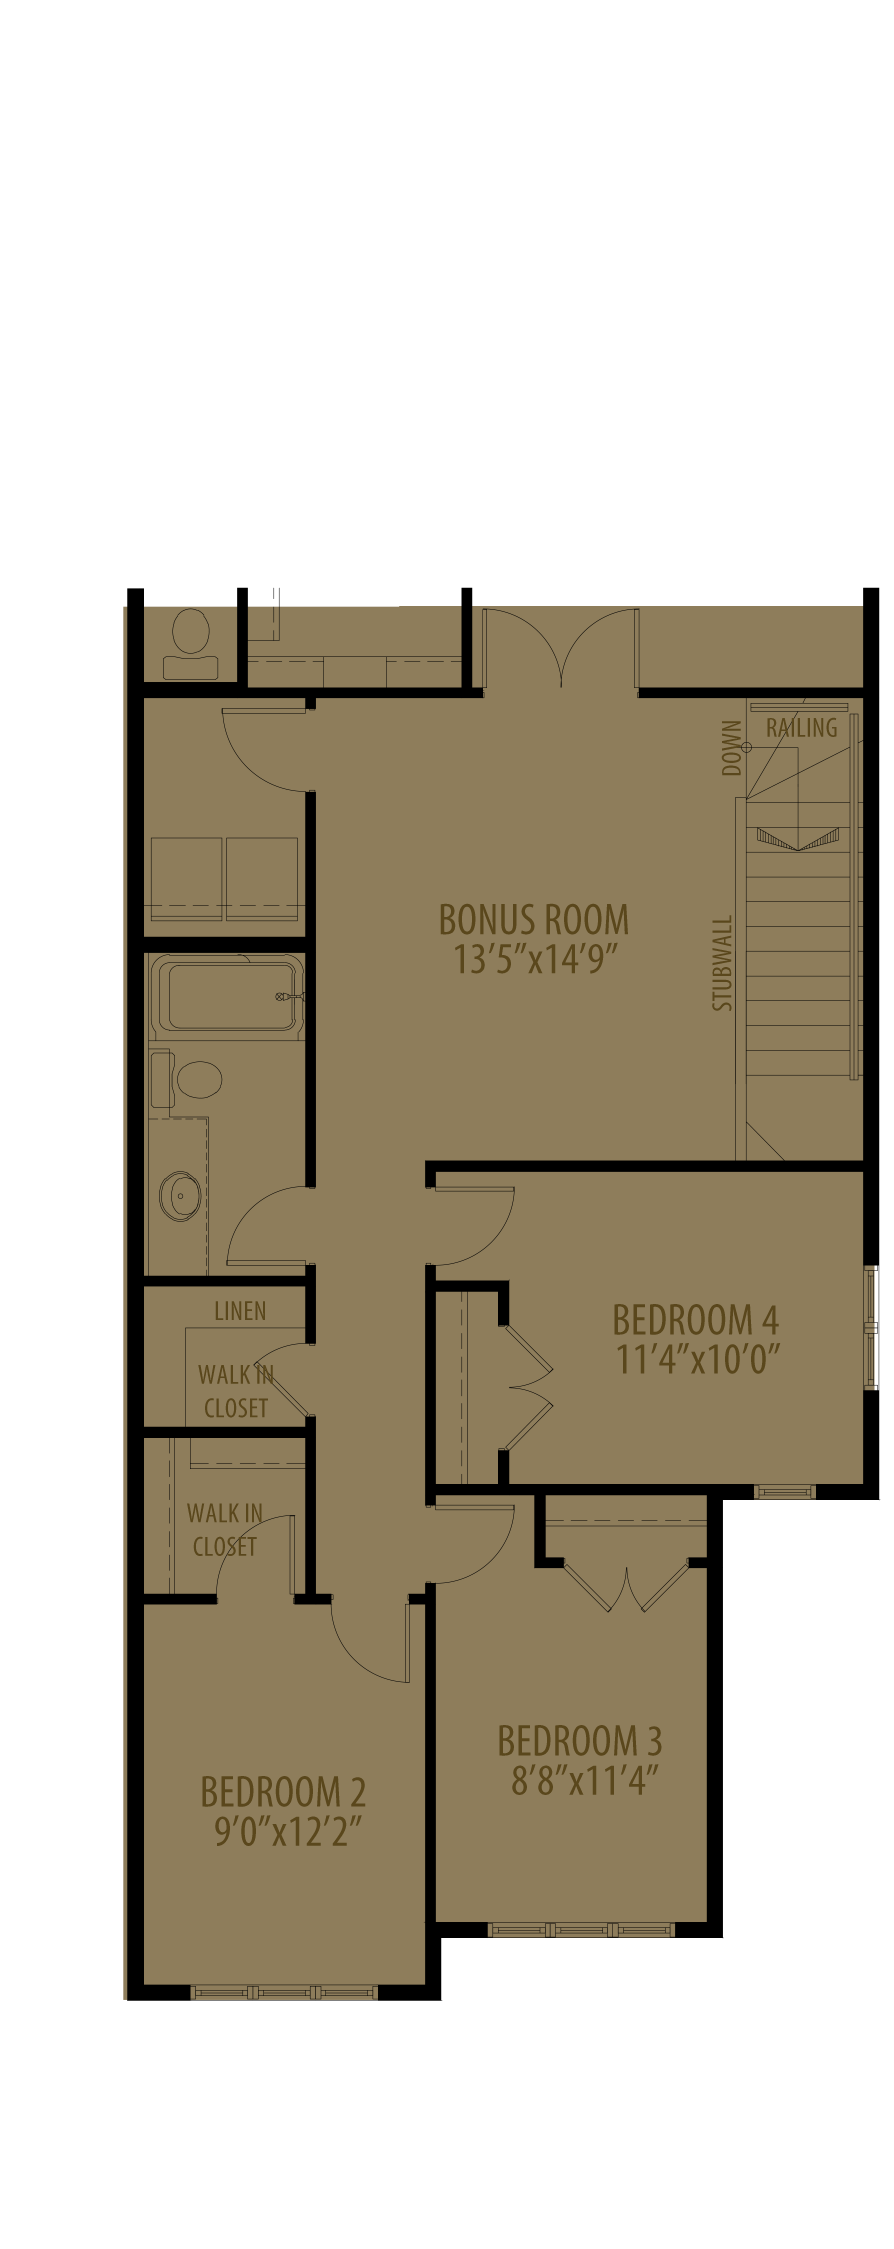 4th Bedroom Adds 229 sq ft